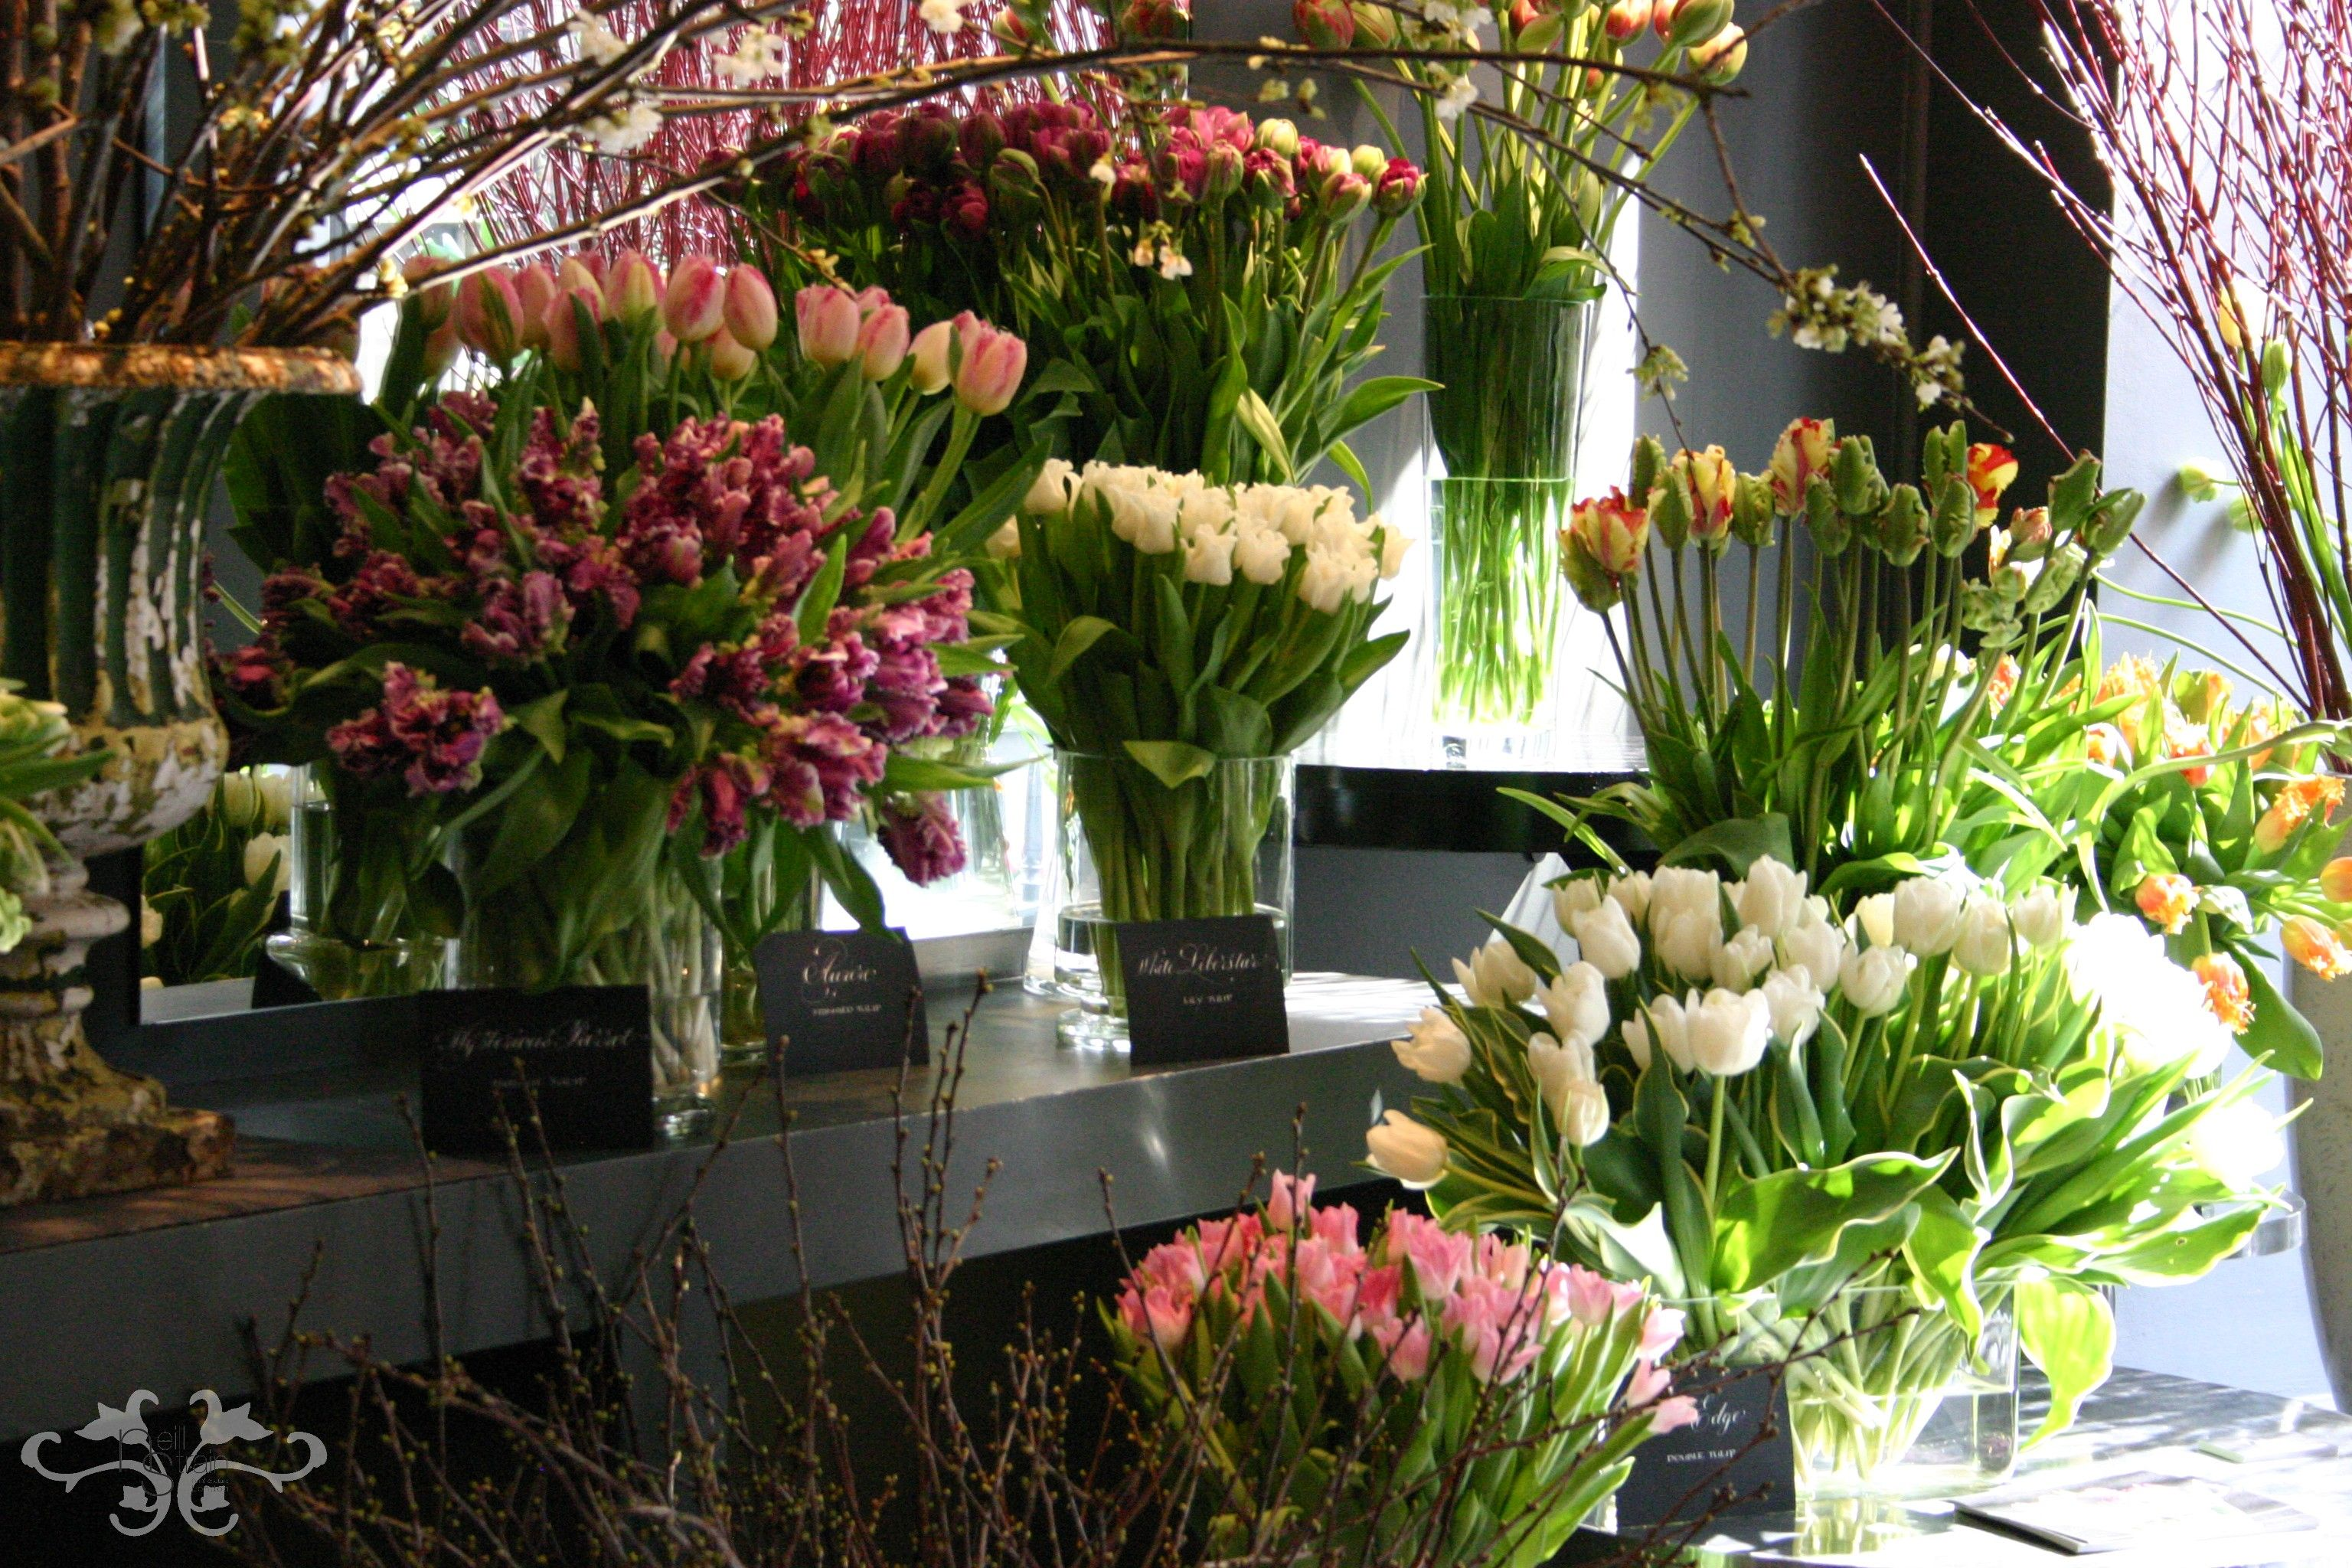 Extraordinary selection of spring flowers to create your personal extraordinary selection of spring flowers to create your personal easter floral decorations of floral gifts at neill strain floral couture london mightylinksfo